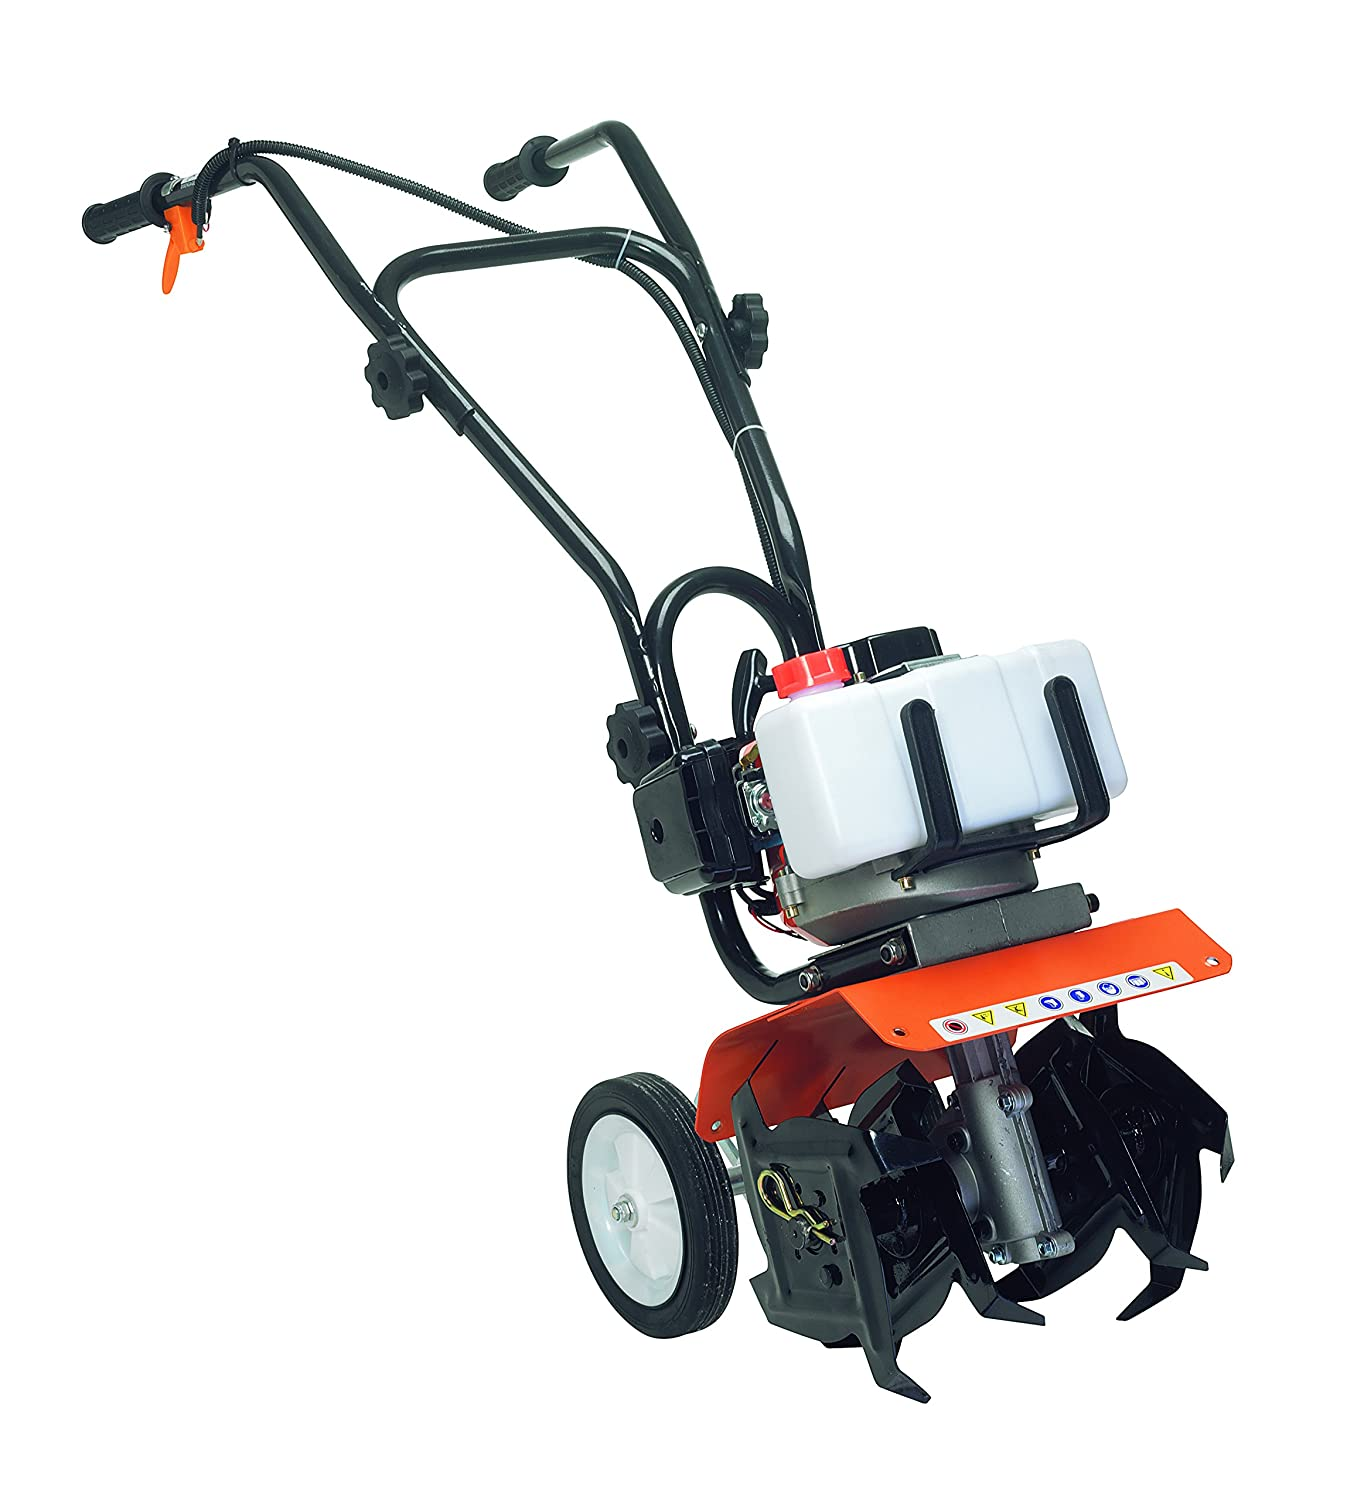 tillers tend mounted and cutting difference small htm tires garden rear between model blades tine to what the largest or have of is cultivators be tiller harrow which behind